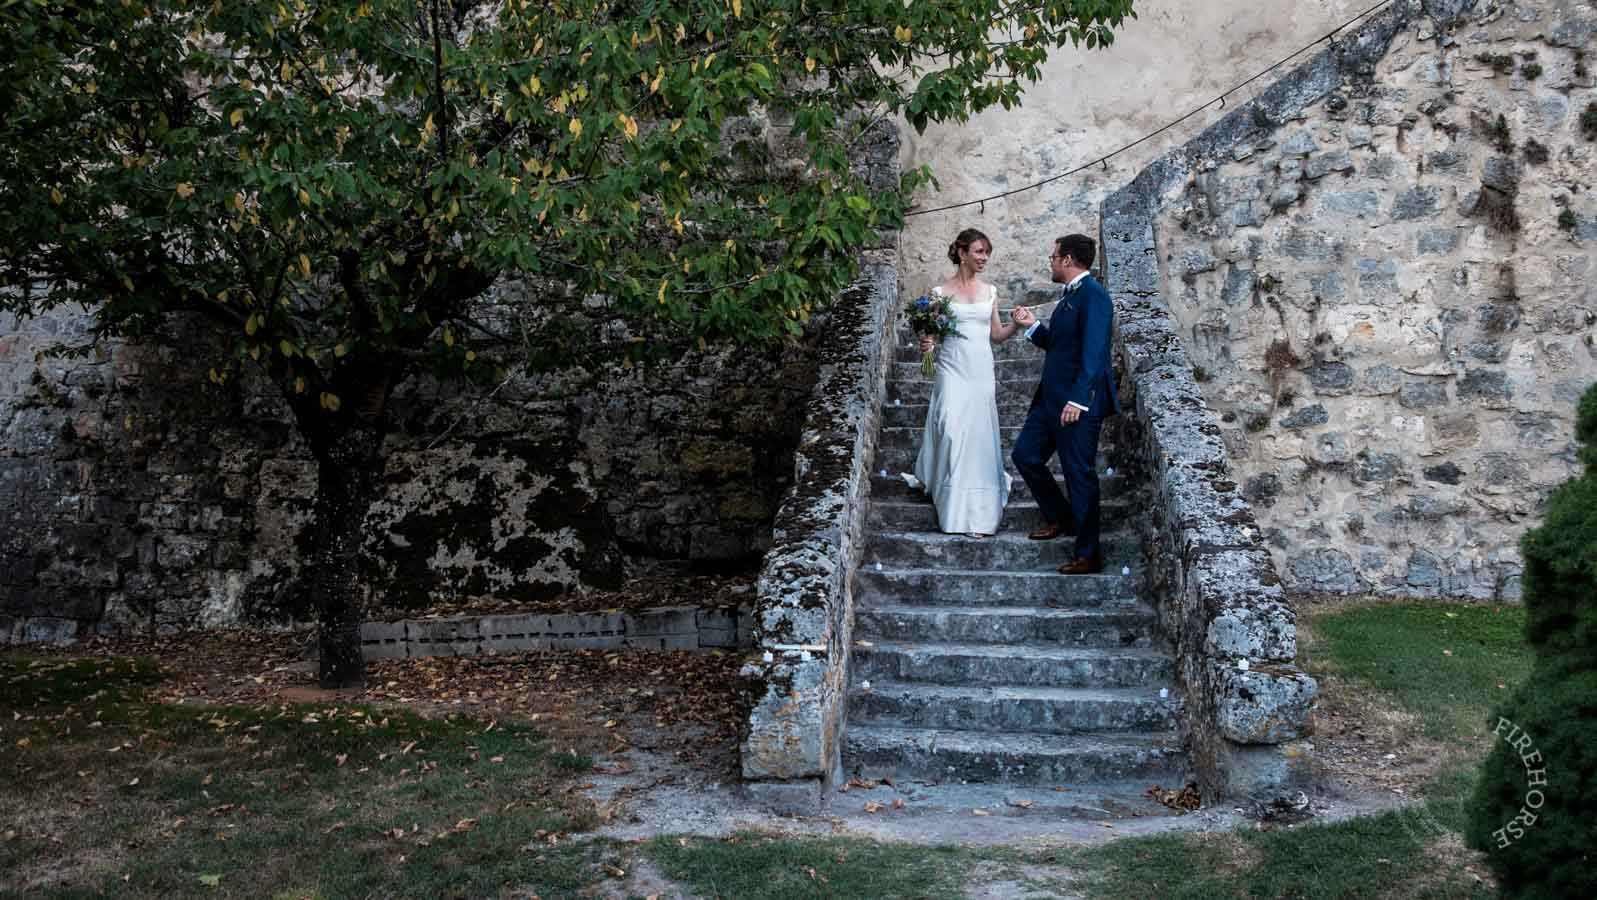 Lot-et-Garonne-Wedding-Photography-279